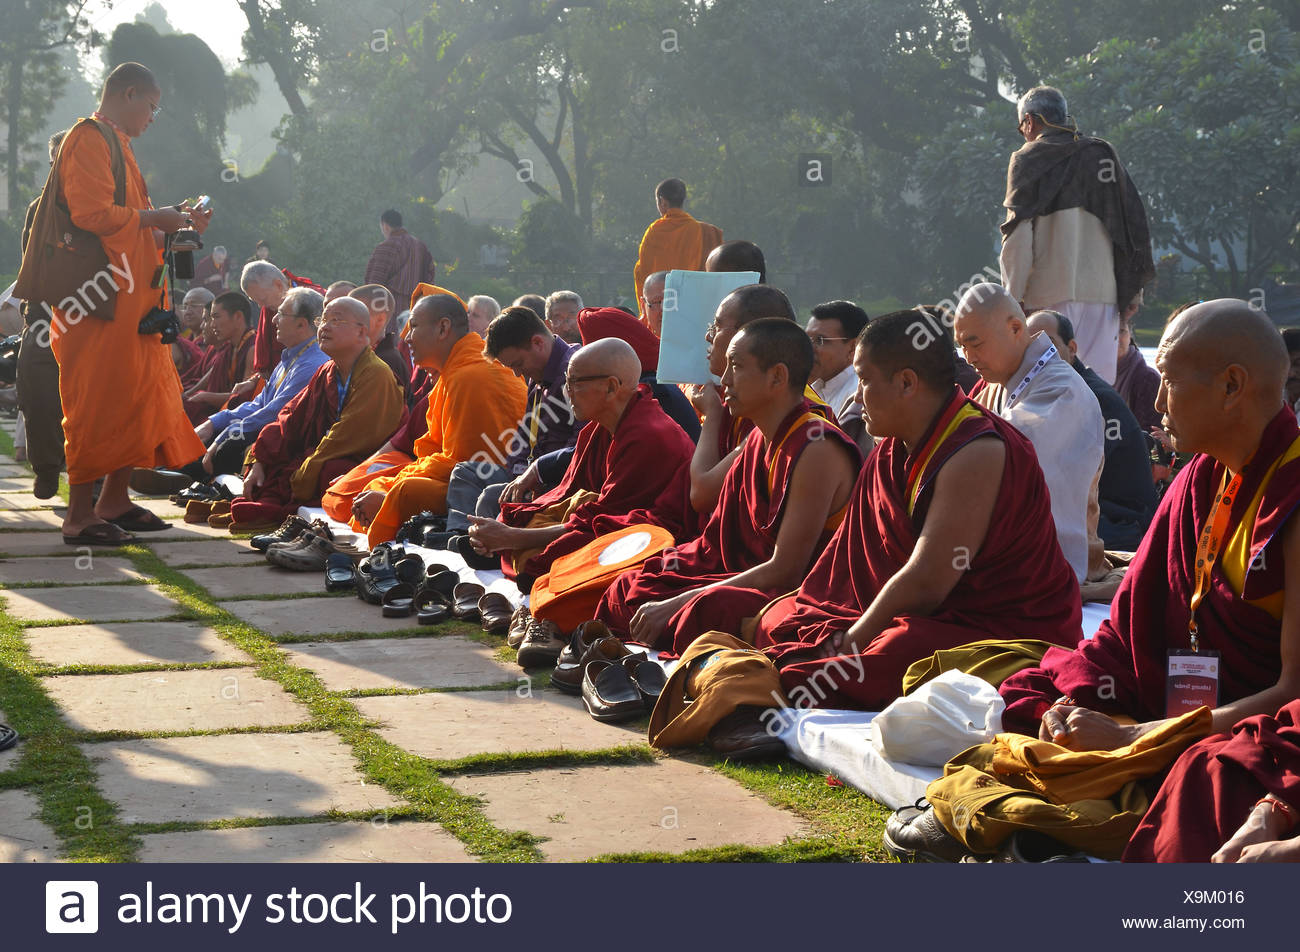 Monks from all Buddhist traditions gather for a communal prayer in their orange and red robes, Global Buddhist Congregation 2011 - Stock Image